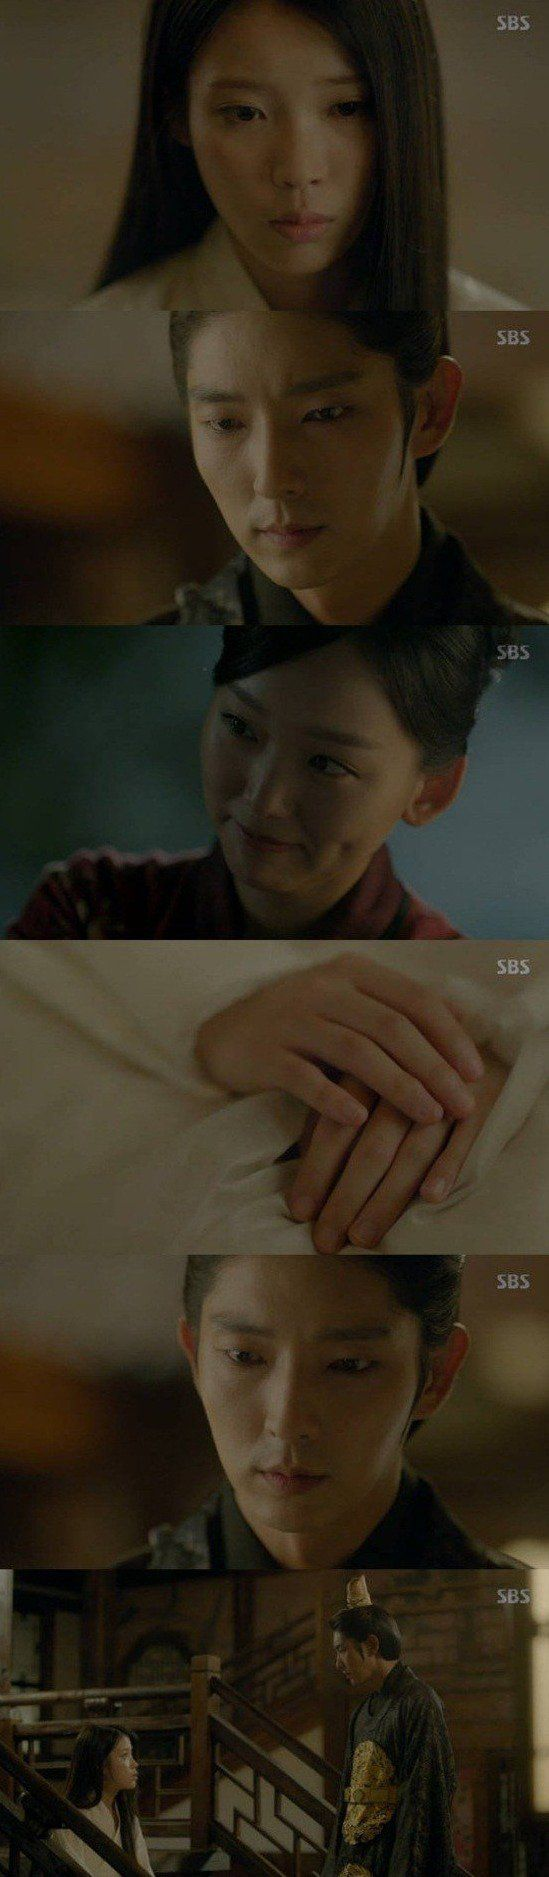 [Spoiler] Added episode 19 captures for the #kdrama 'Scarlet Heart: Ryeo'